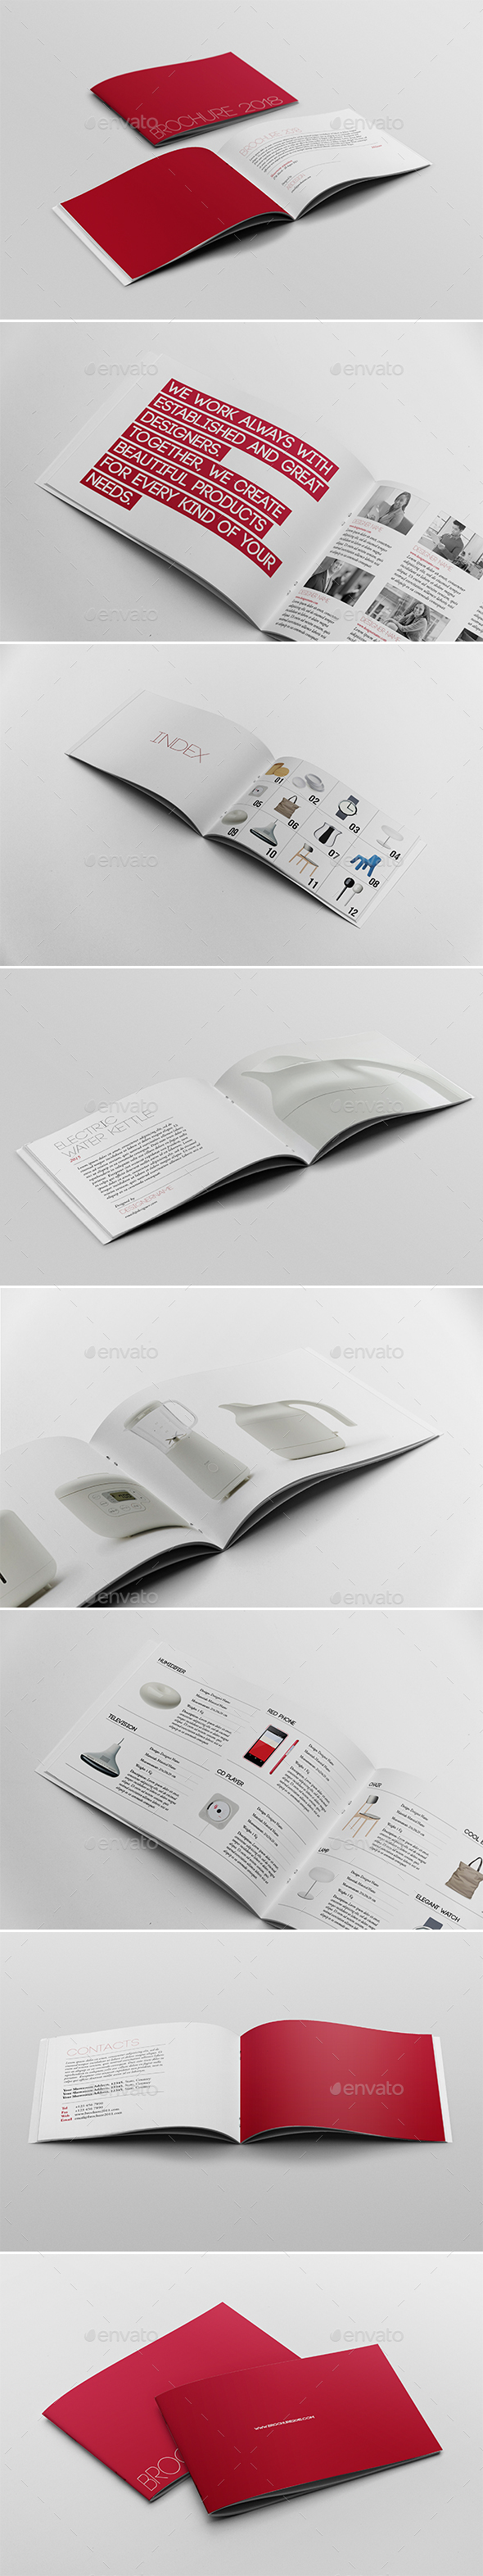 Graphicriver   A5 Brochure Free Download free download Graphicriver   A5 Brochure Free Download nulled Graphicriver   A5 Brochure Free Download